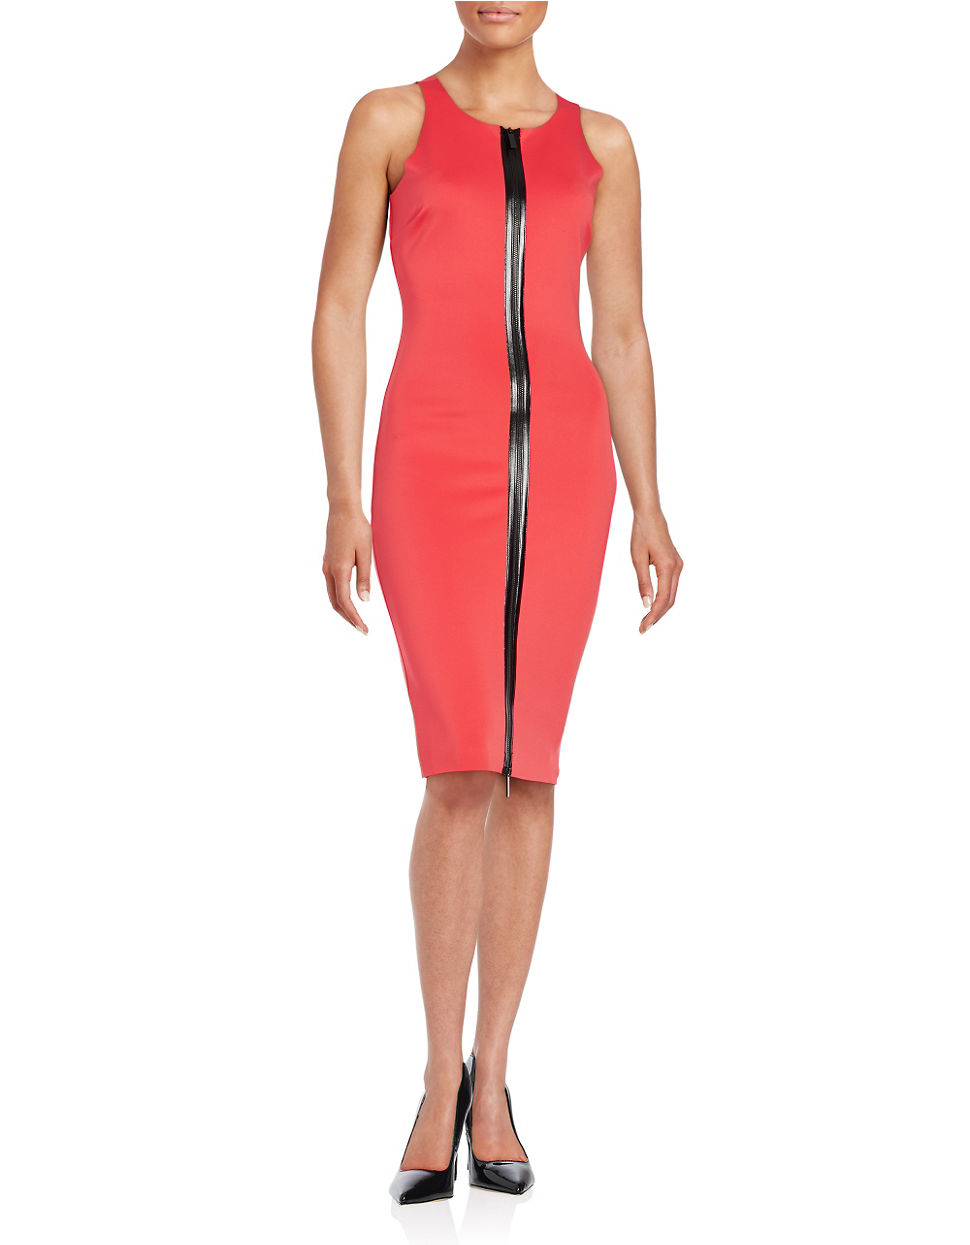 Guess cutout sheath dress in orange lyst for Tj maxx wedding guest dresses